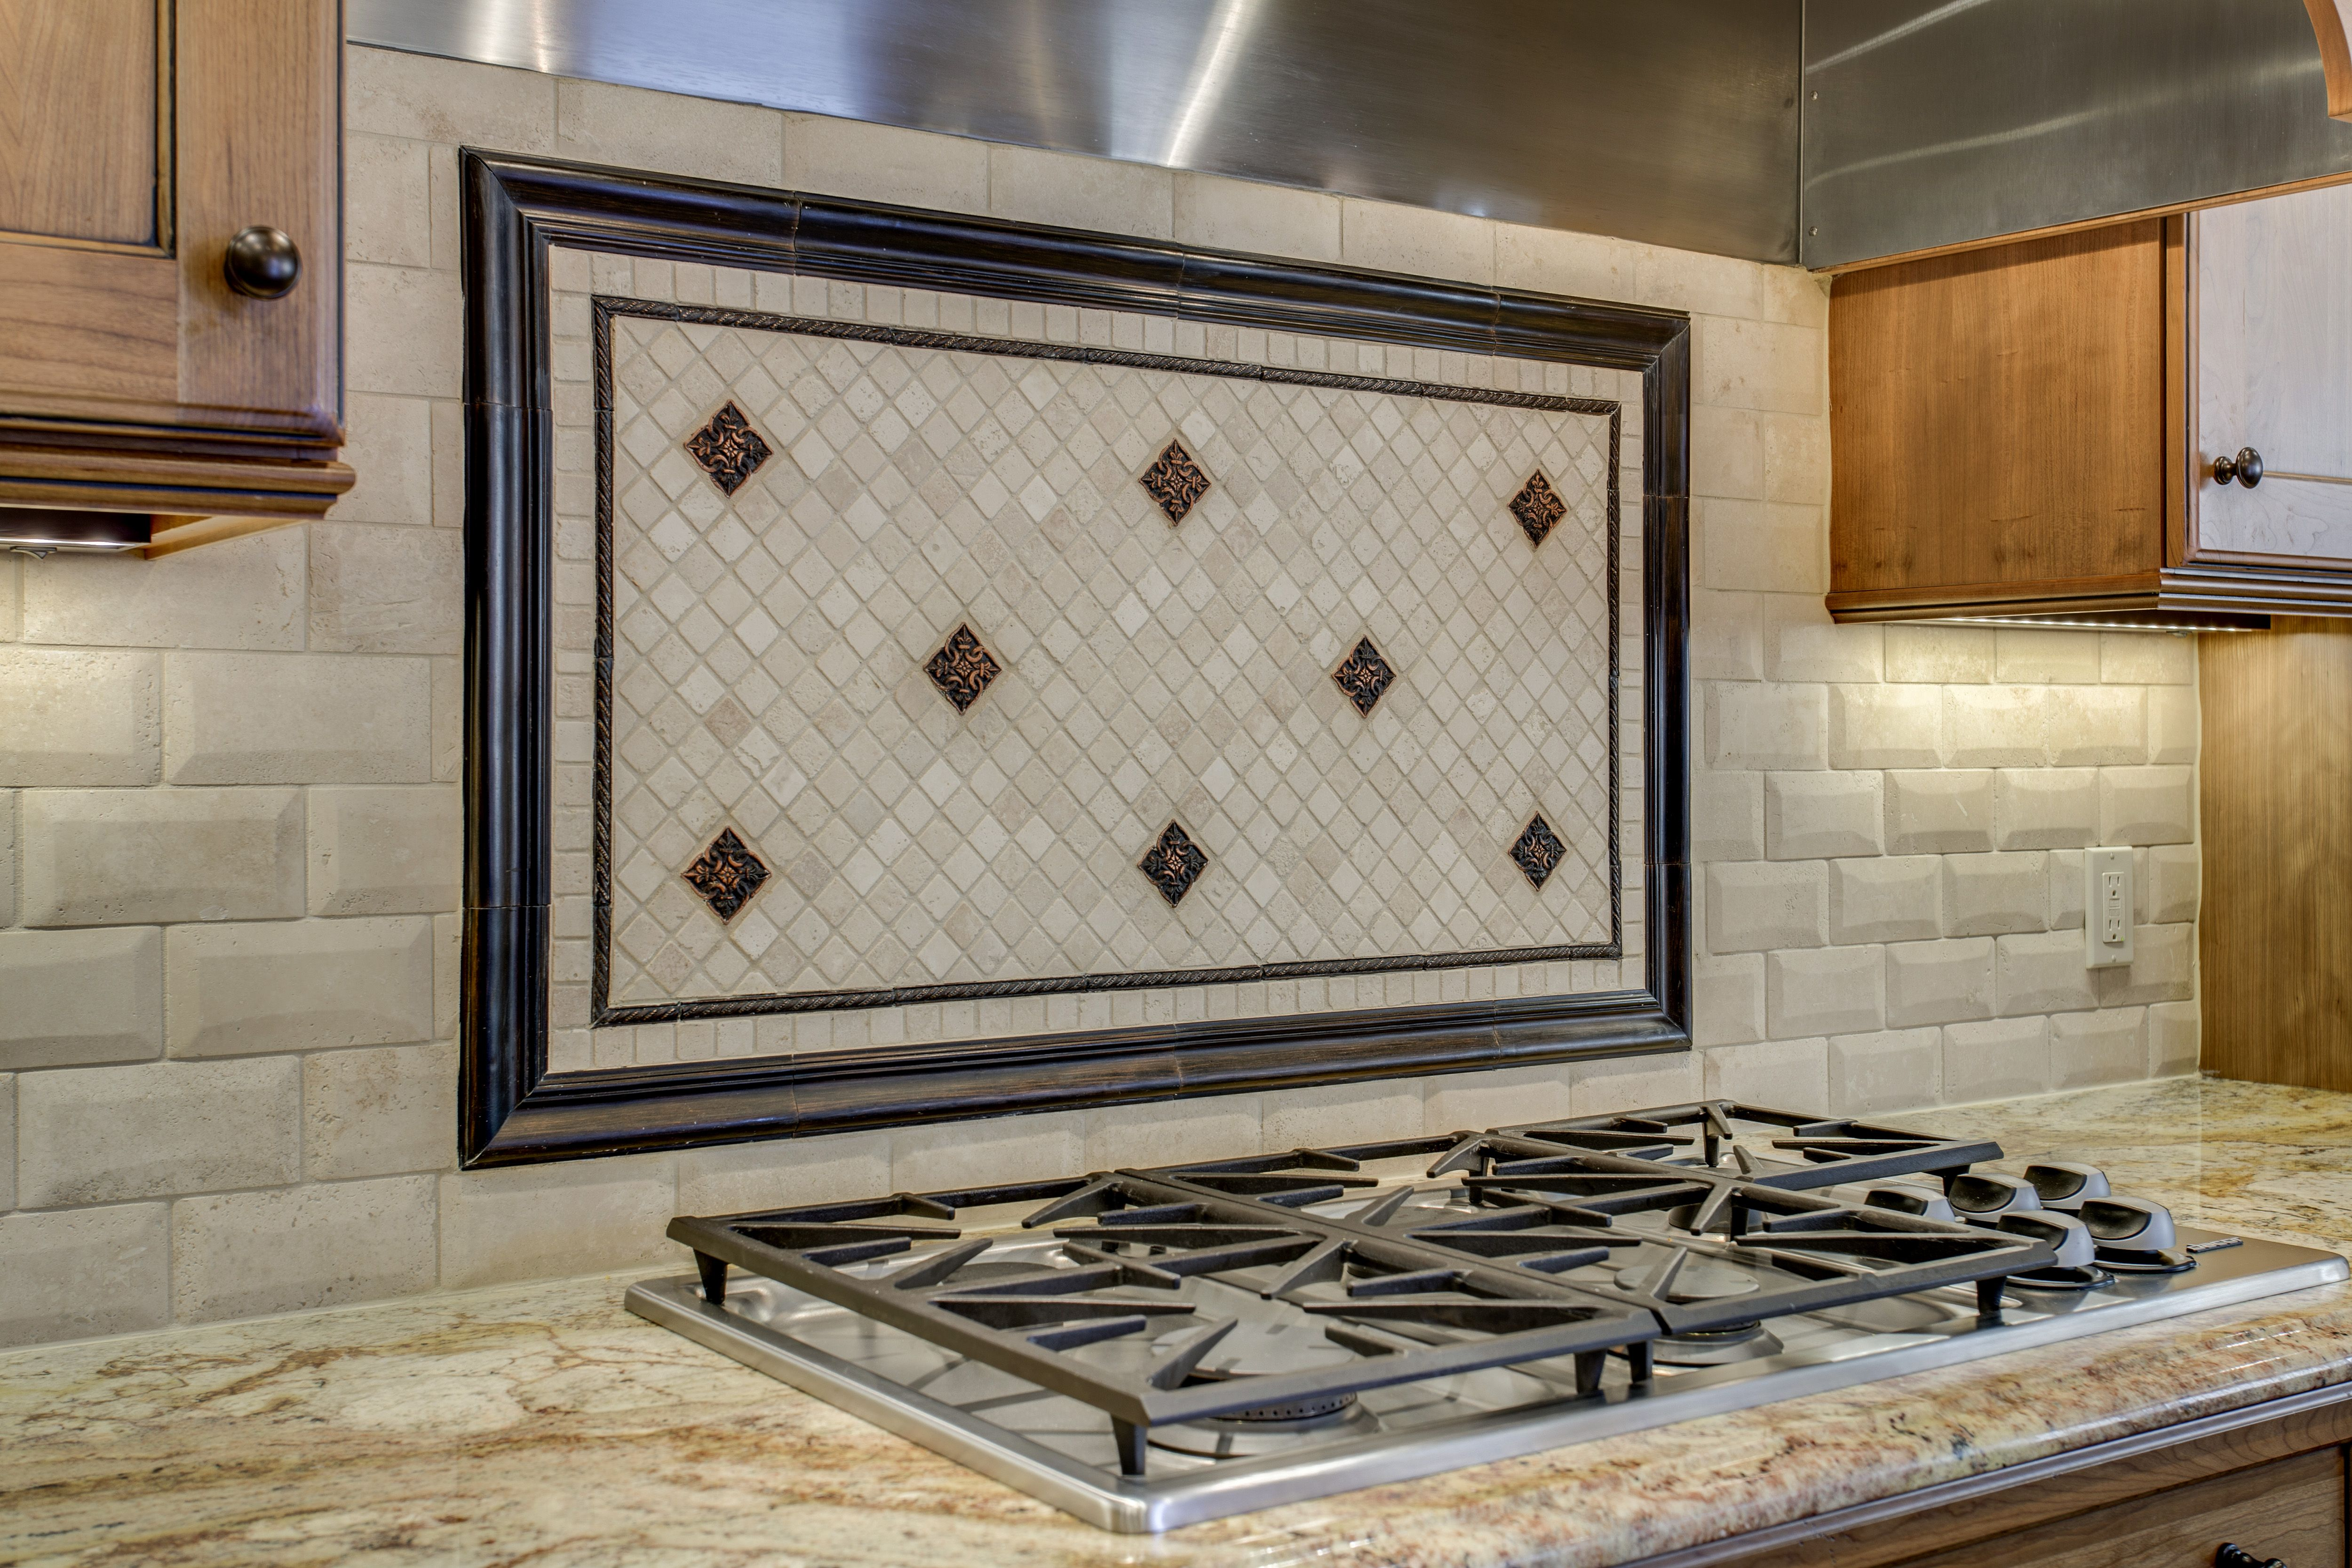 3x6 mexican travetine tile backsplash 2x12 armour oil rubbed 3x6 mexican travetine tile backsplash 2x12 armour oil rubbed bronze picture dailygadgetfo Image collections